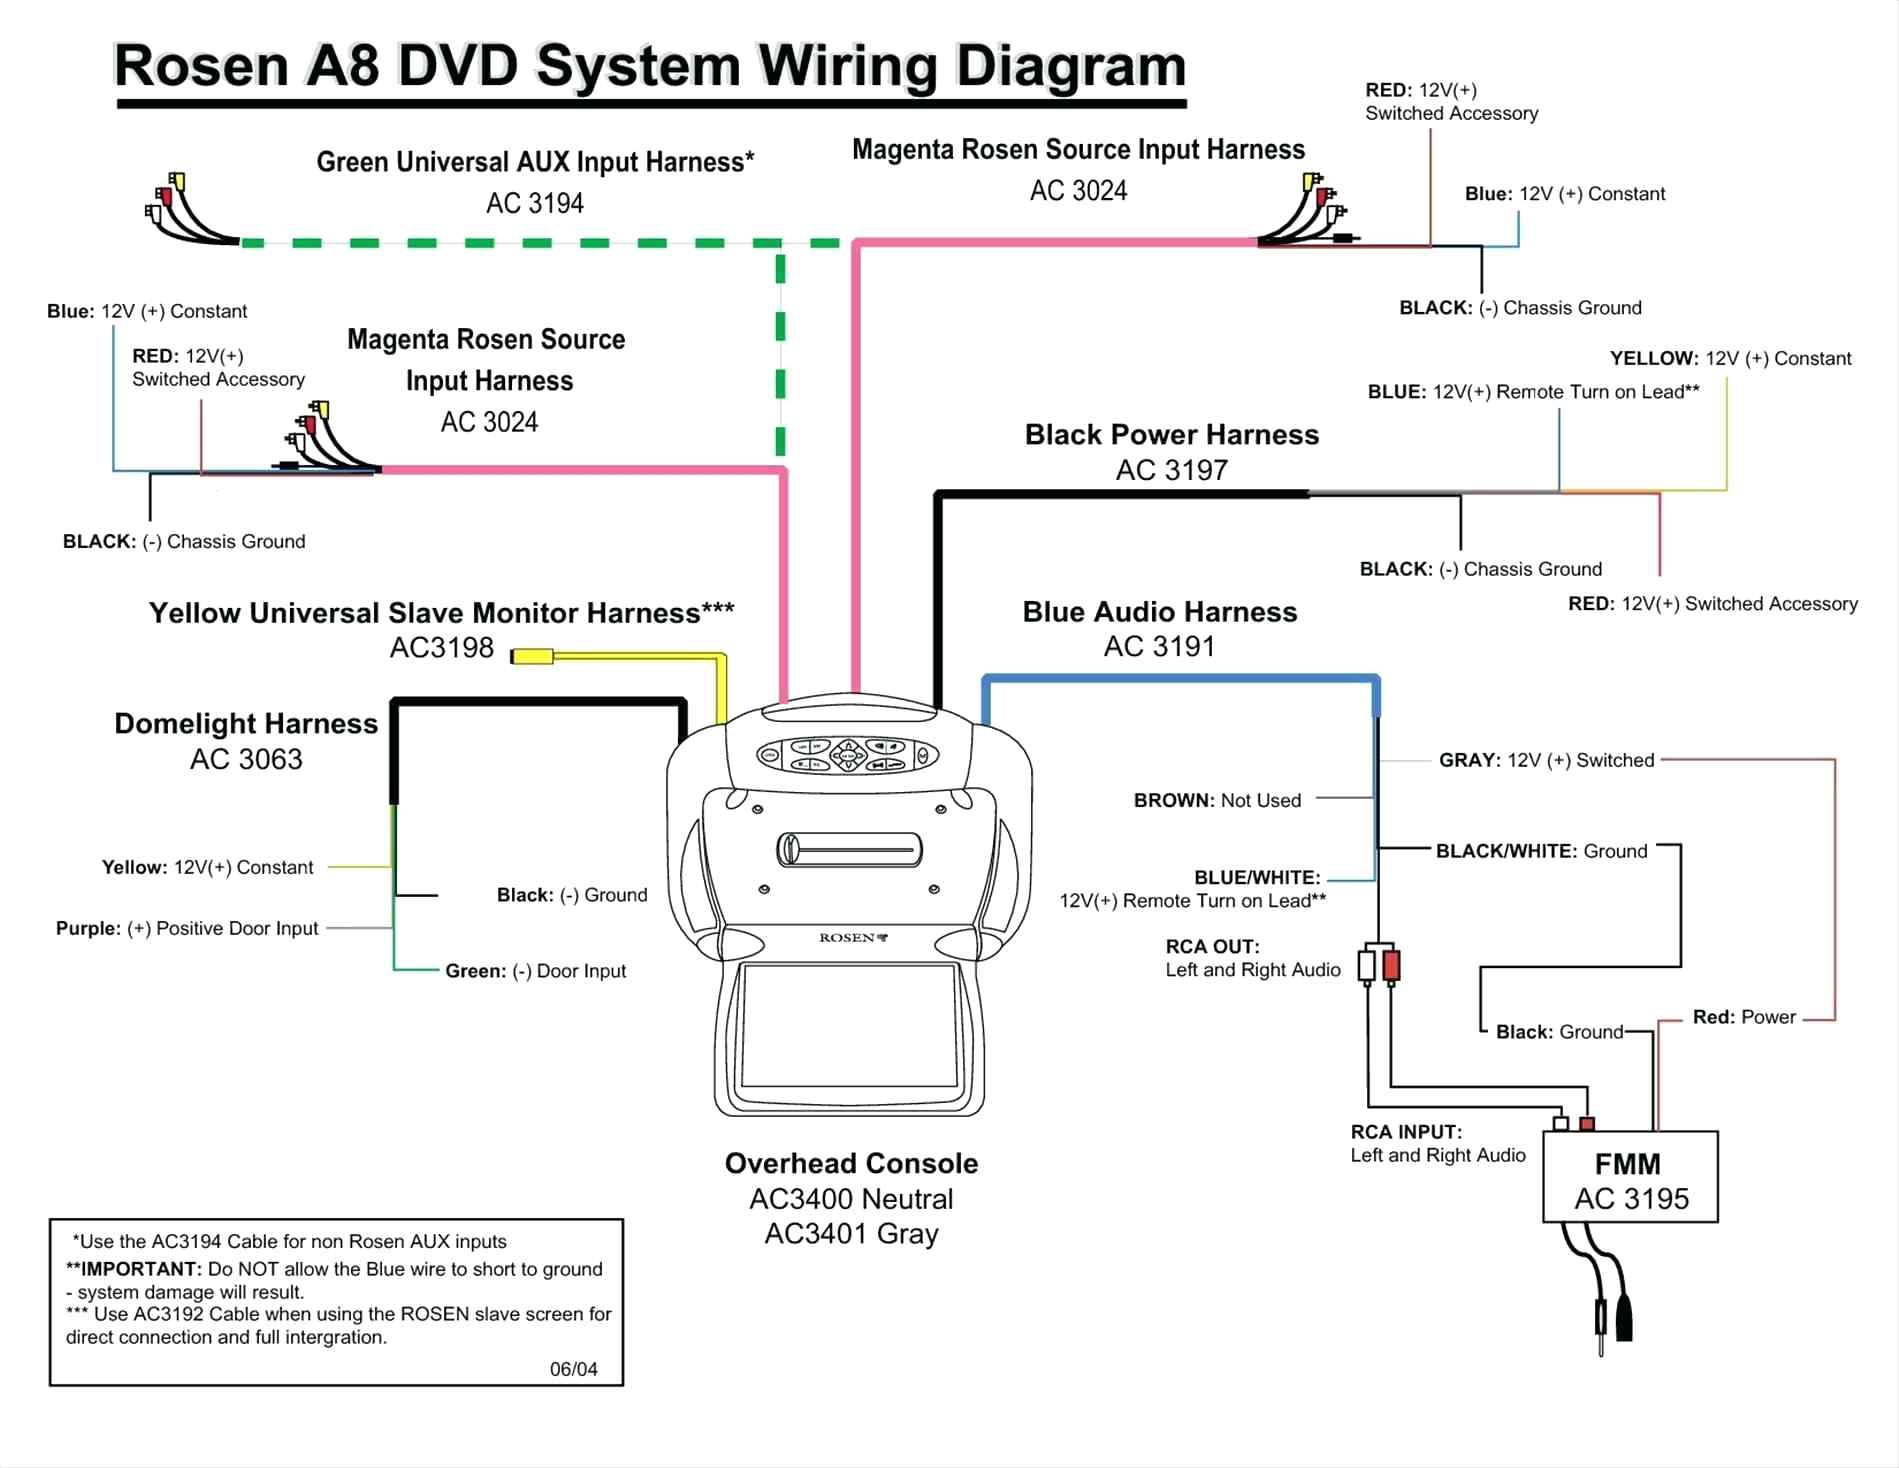 Square D Transformer Wiring Diagram : Square d buck boost transformer wiring diagram gallery